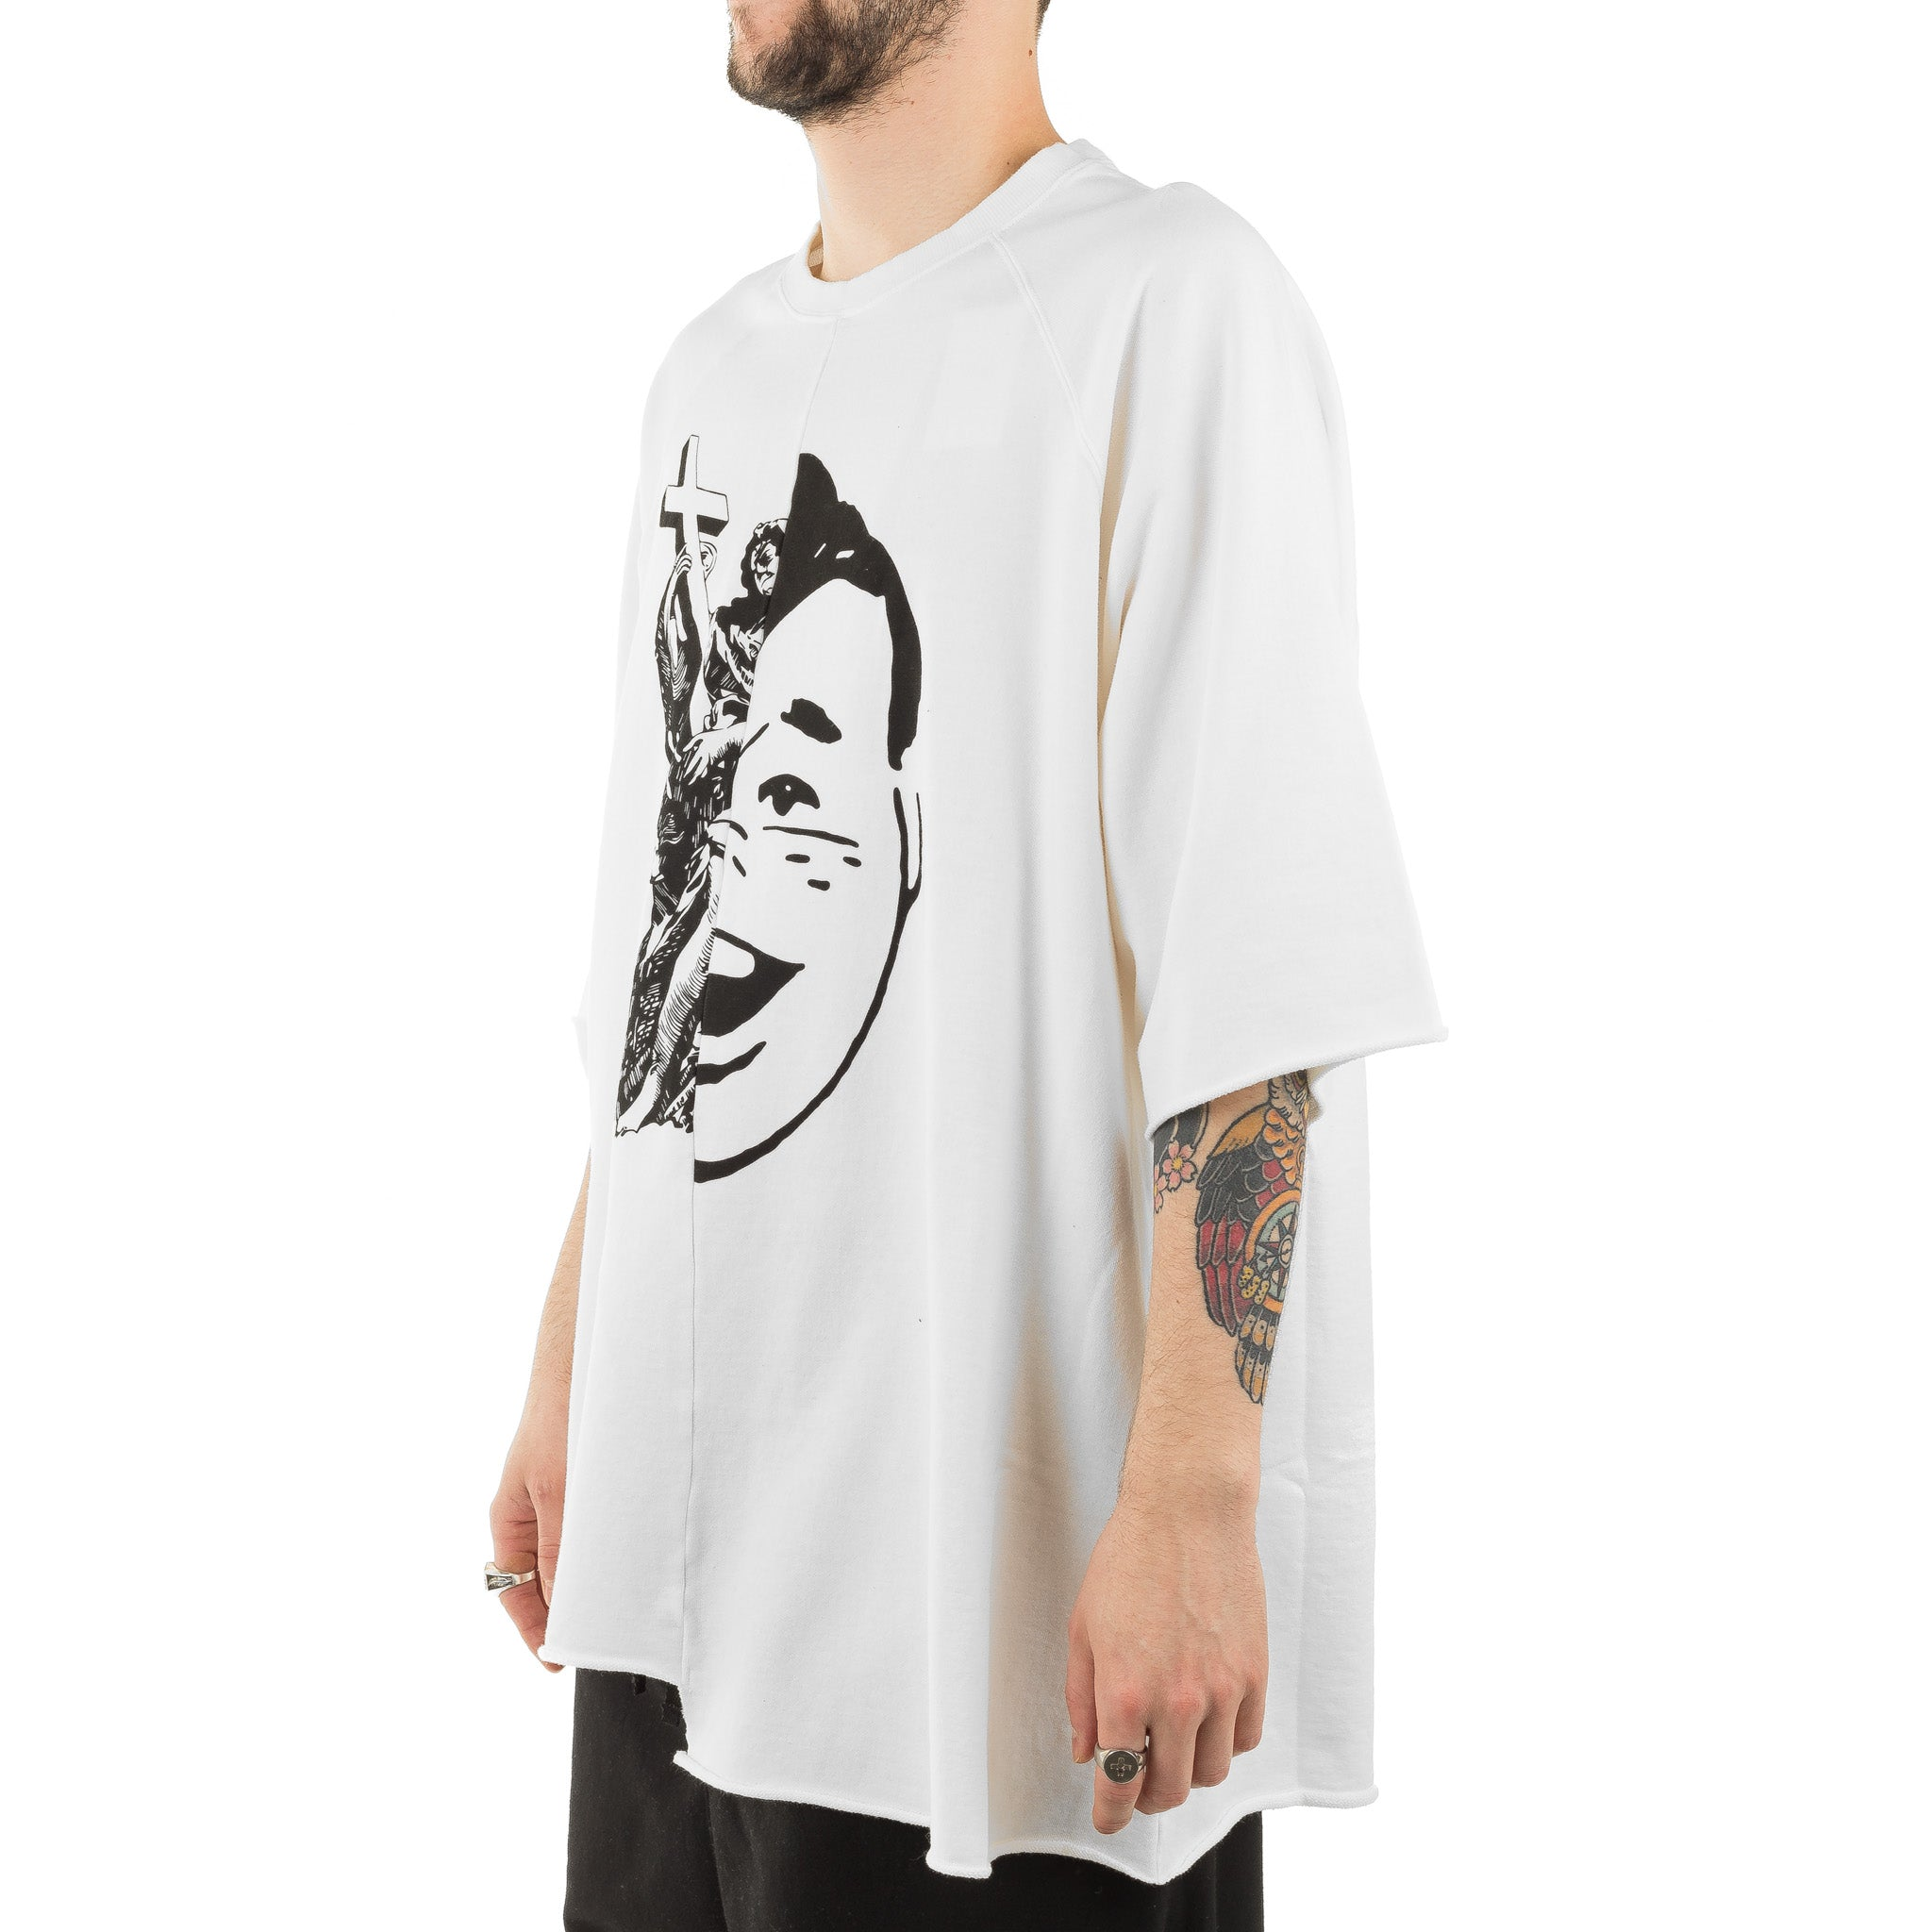 JohnUndercover Tee JUW4805-1 Off White